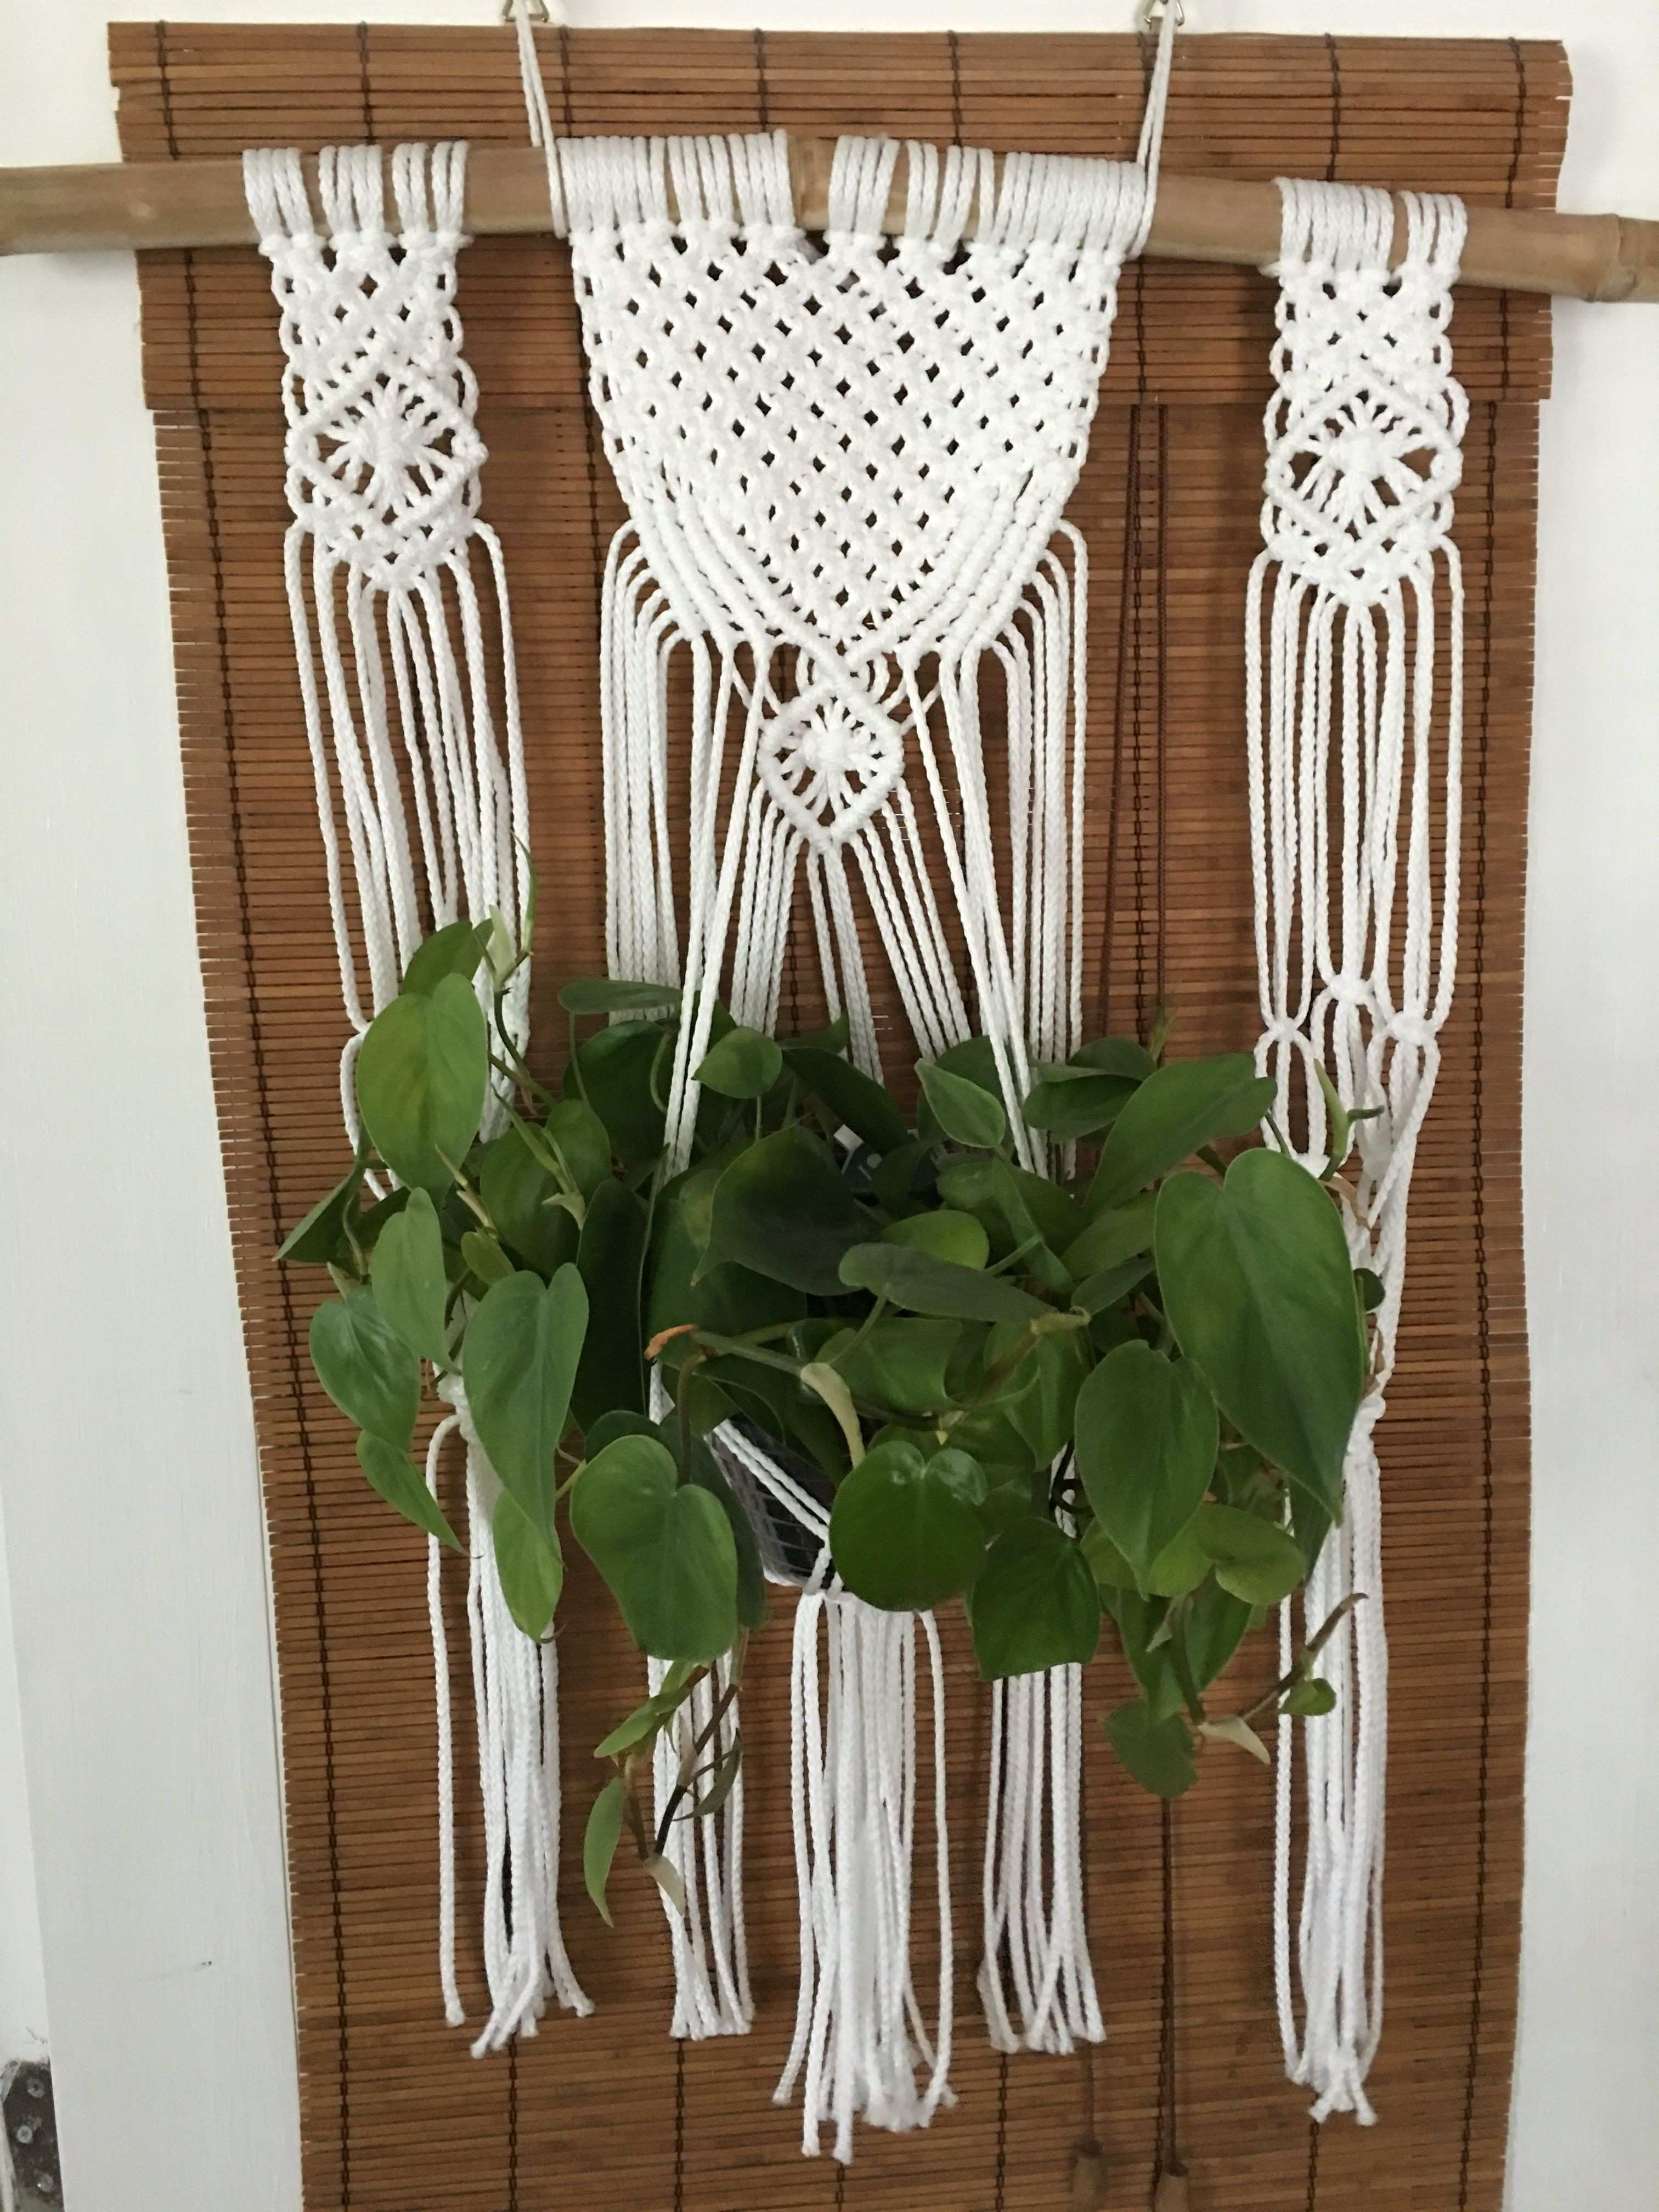 Macrame wall planter Holds 3 plants Made with nylon cord Looks